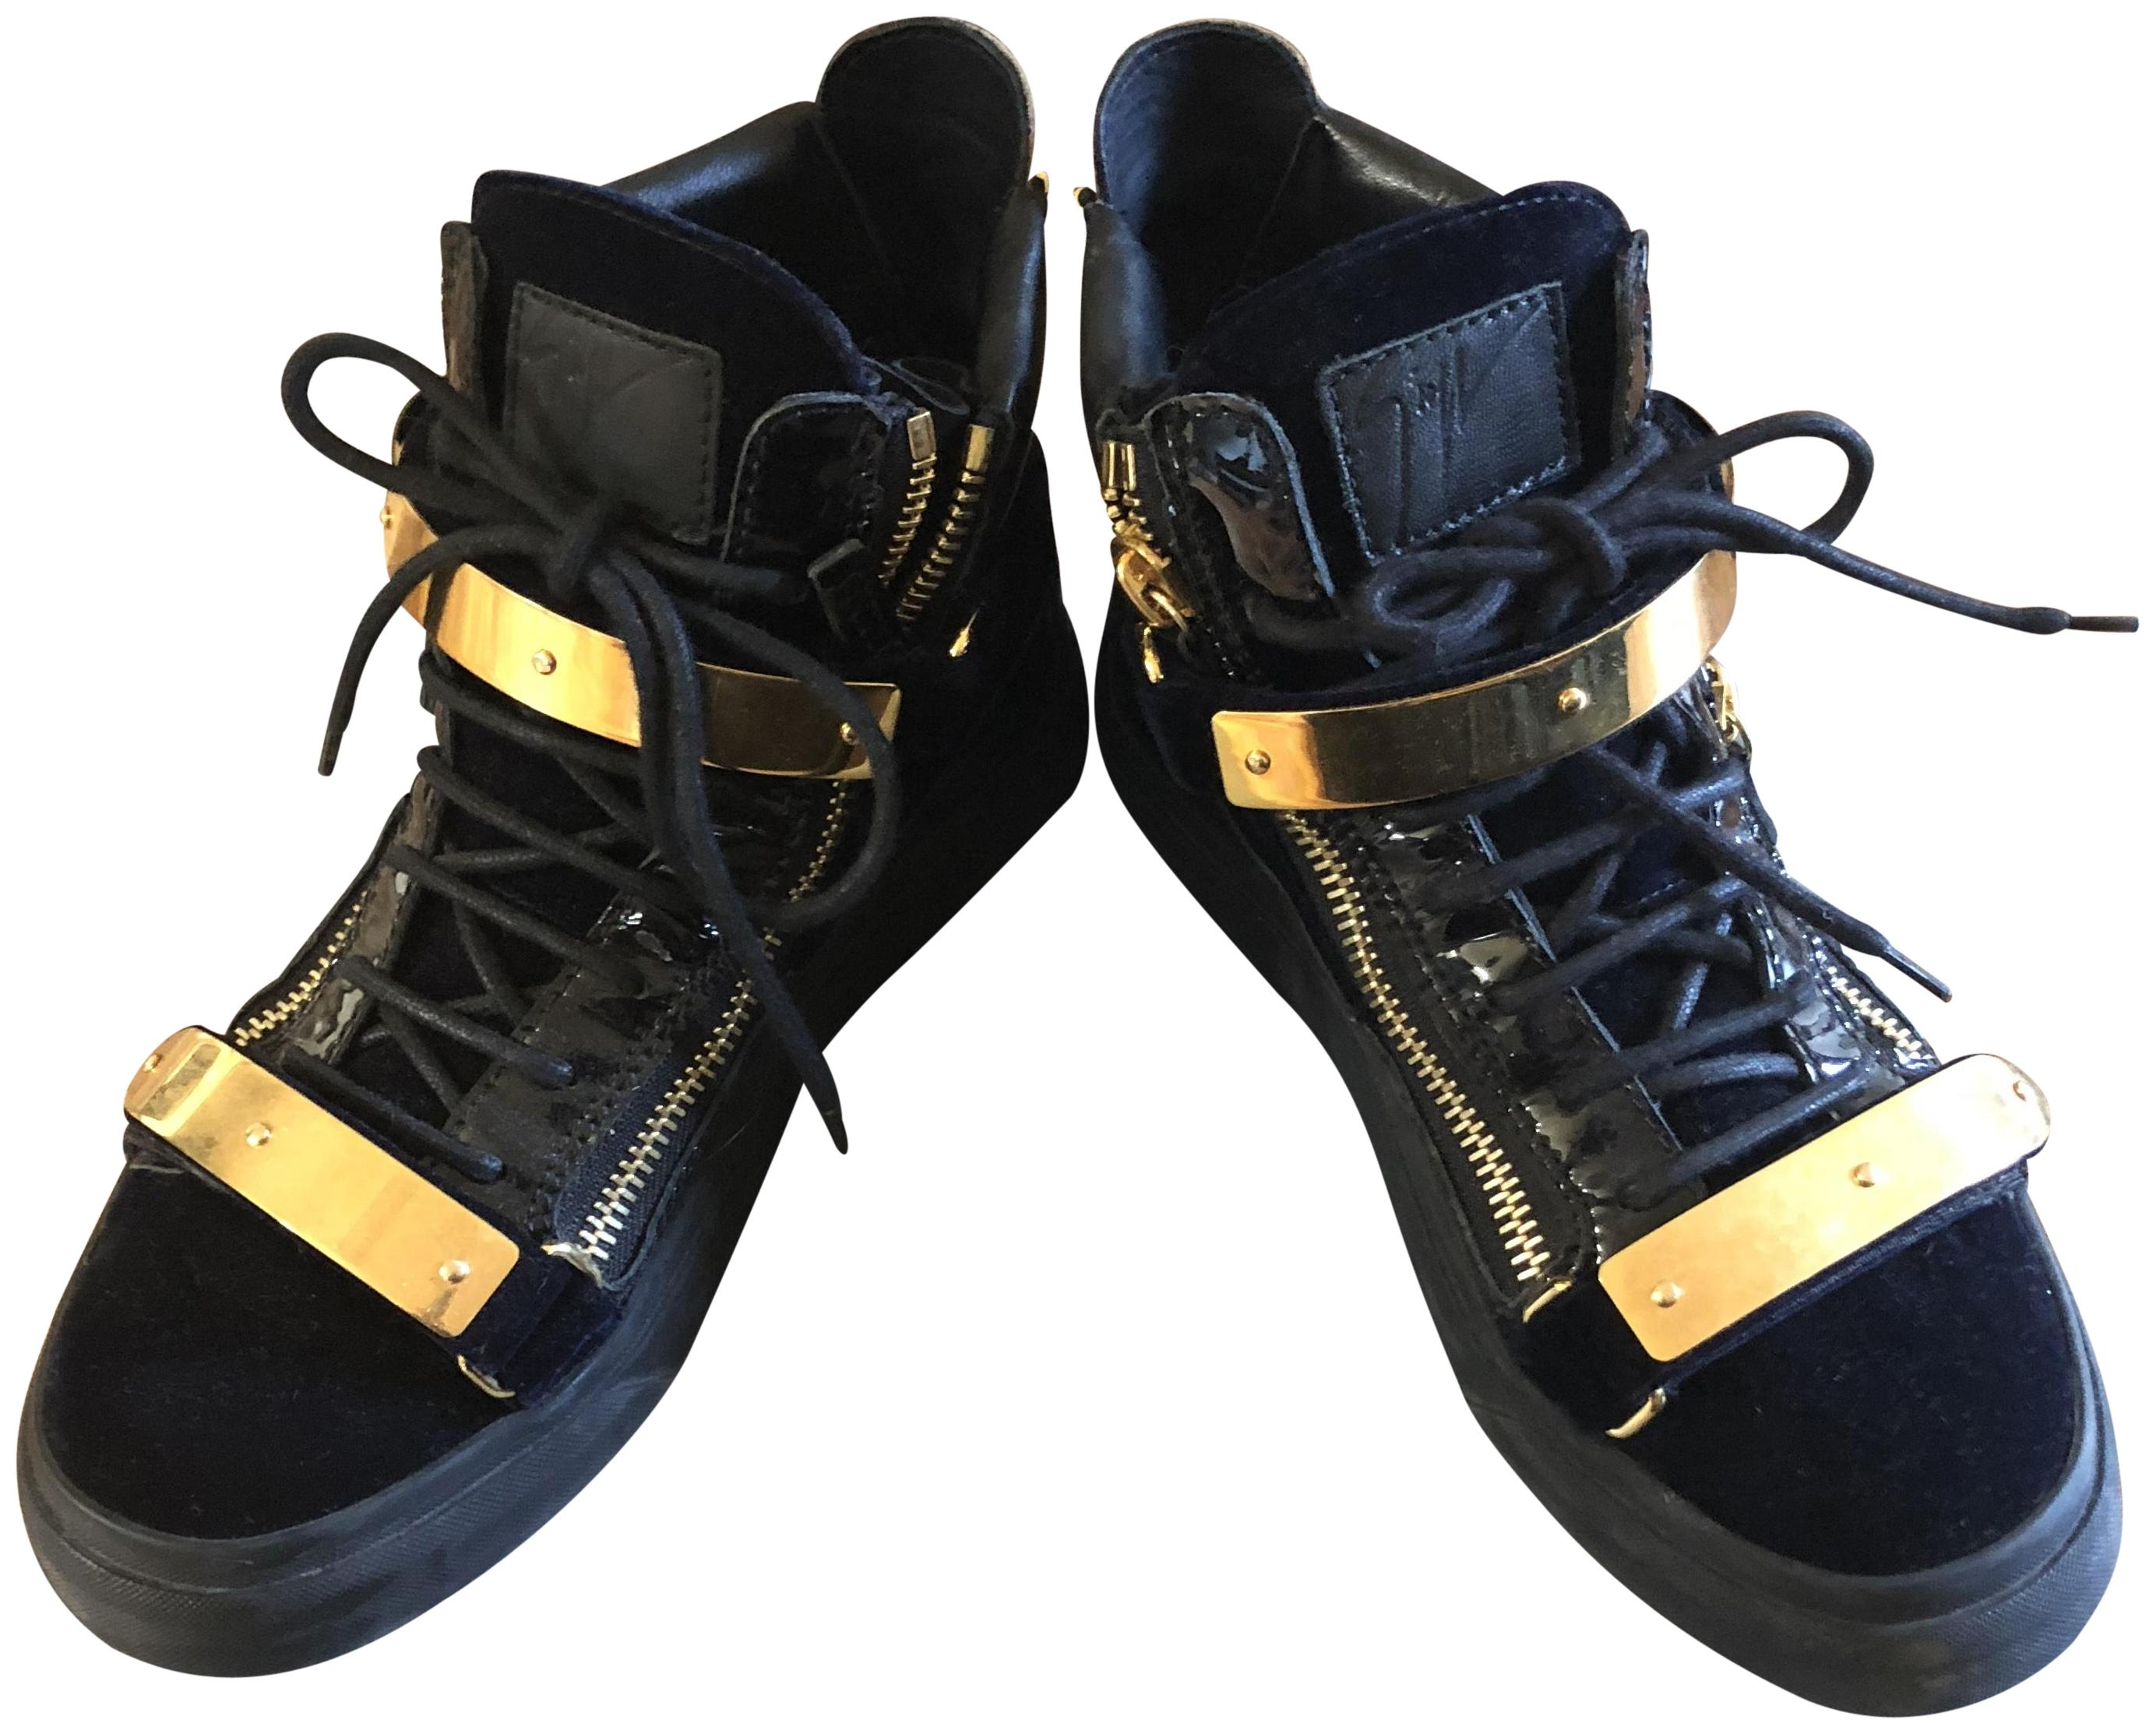 Giuseppe Zanotti Black and May Gold Velvet May and London Sneakers Size US 8.5 Regular (M, B) 4fc7b0